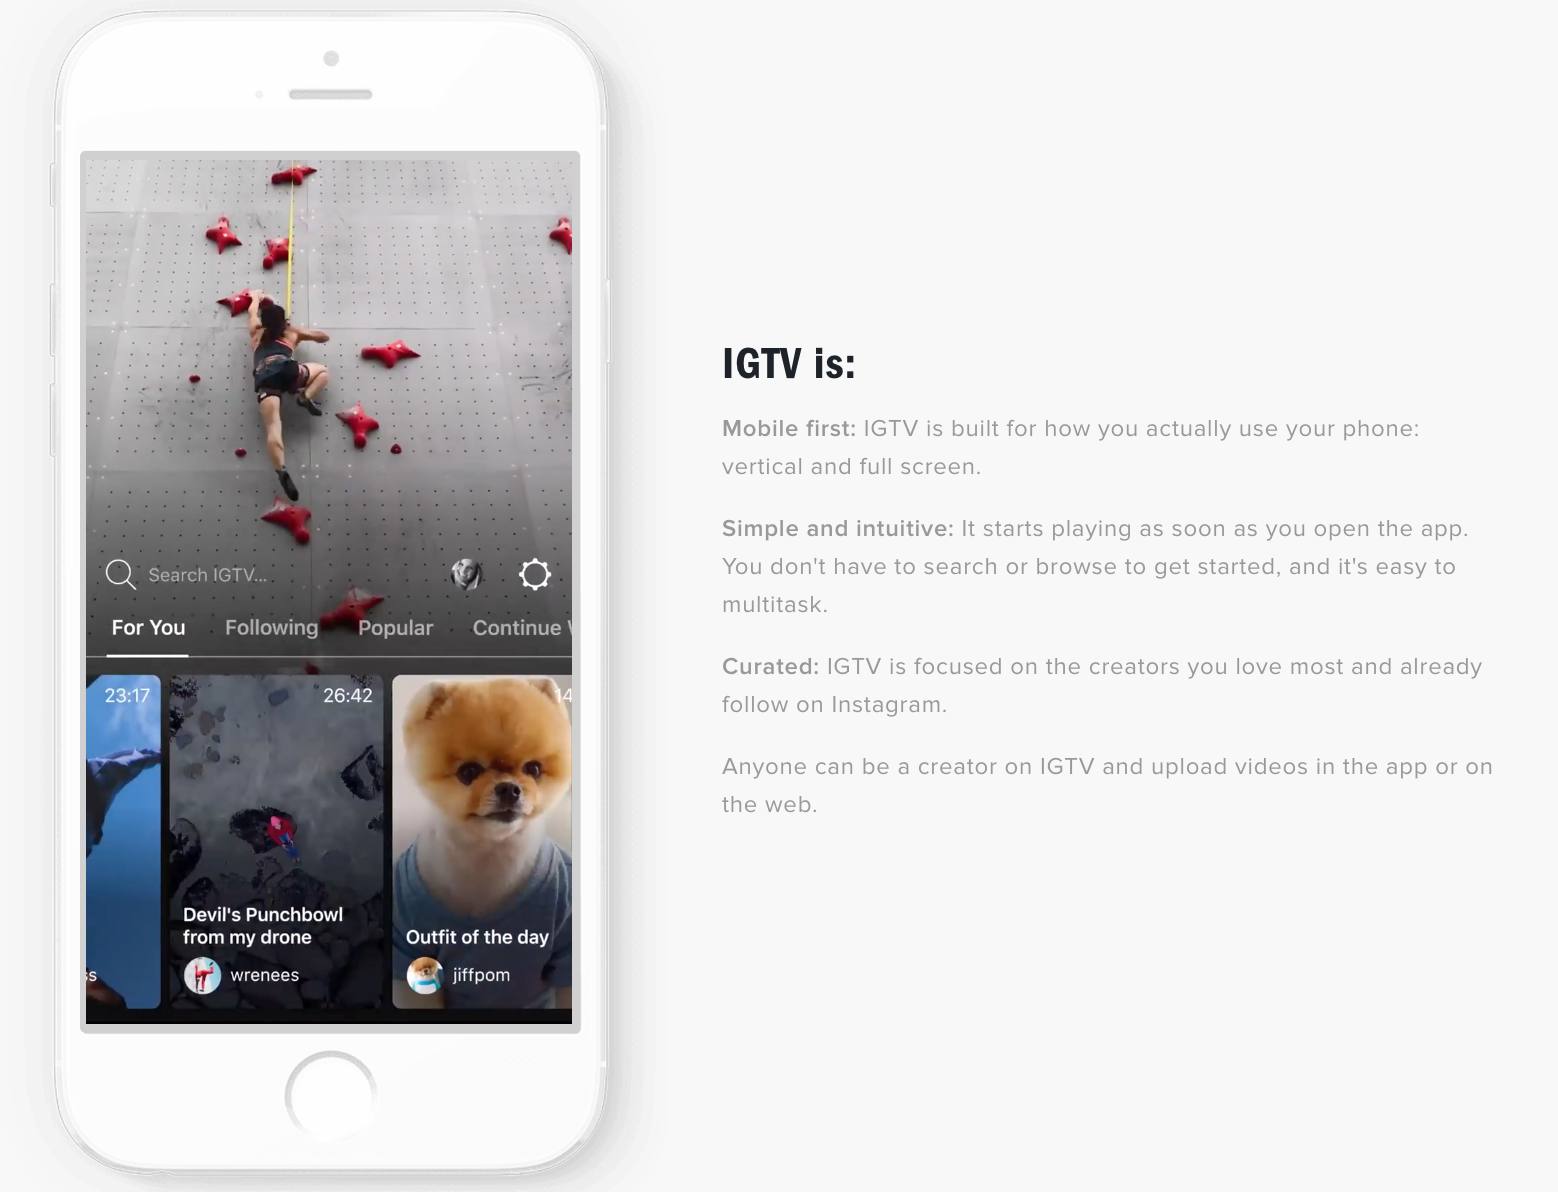 With a billion users, Instagram takes on YouTube in video